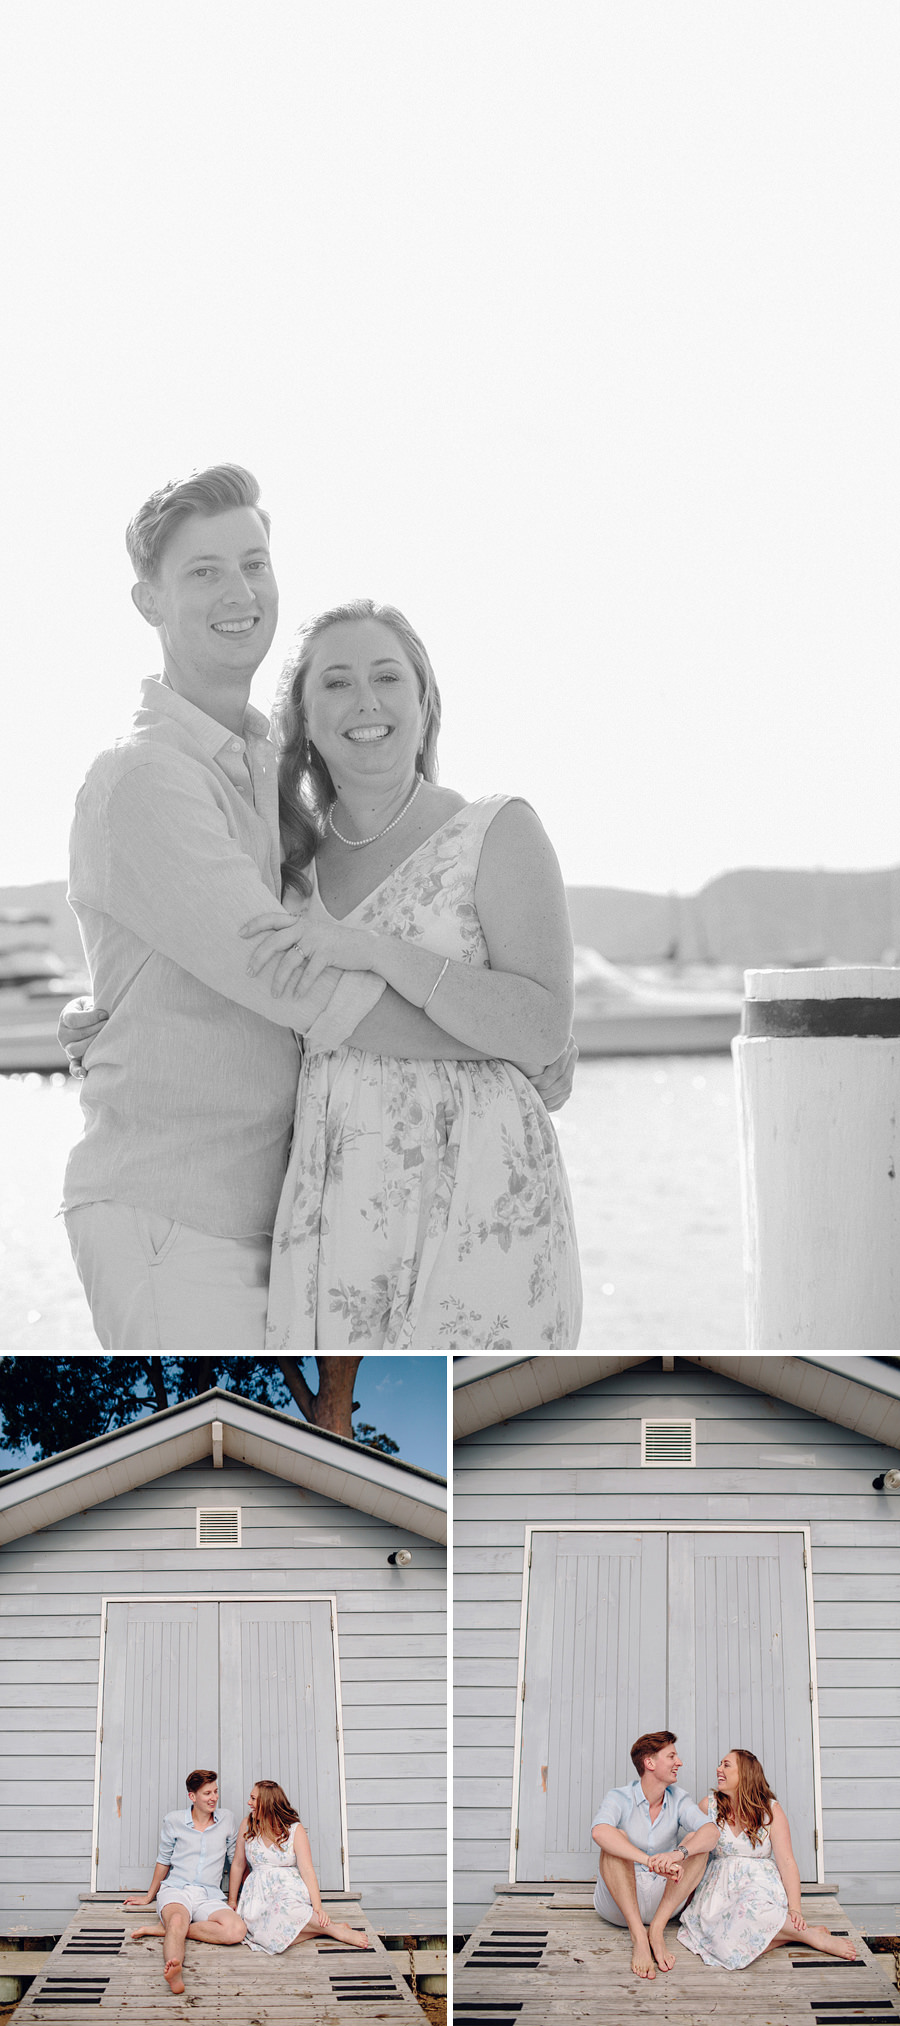 Clareville Engagement Photography: Alice & James